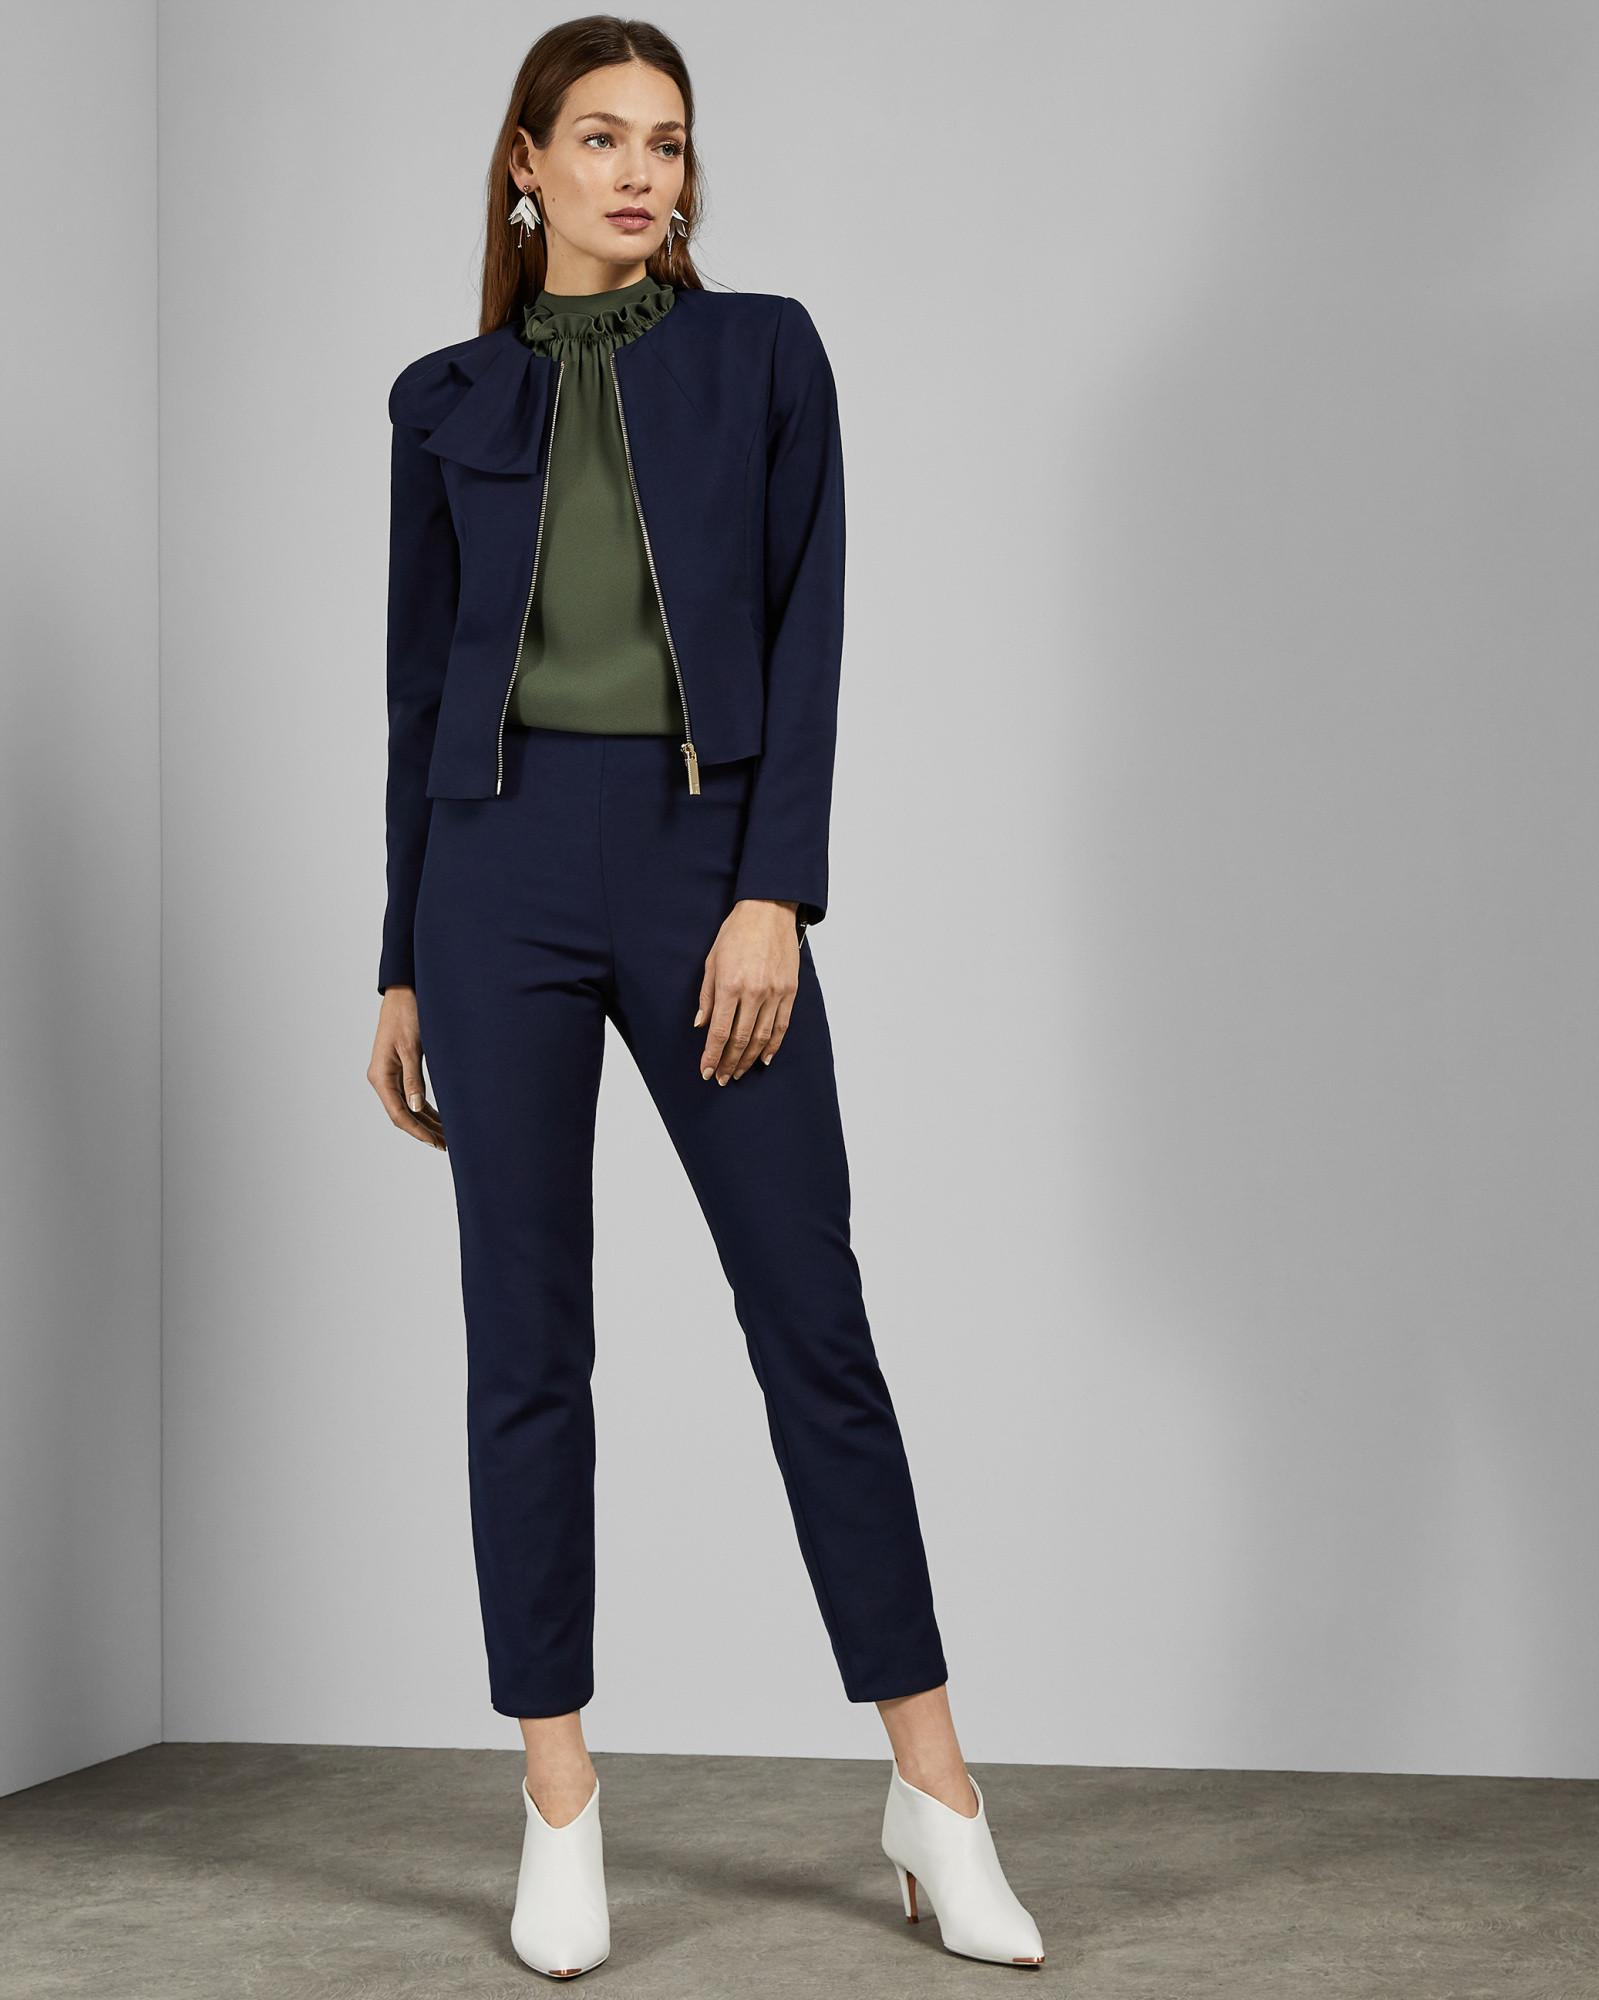 b5b124241 Lyst - Ted Baker Cropped Jacket With Bow Detail in Blue